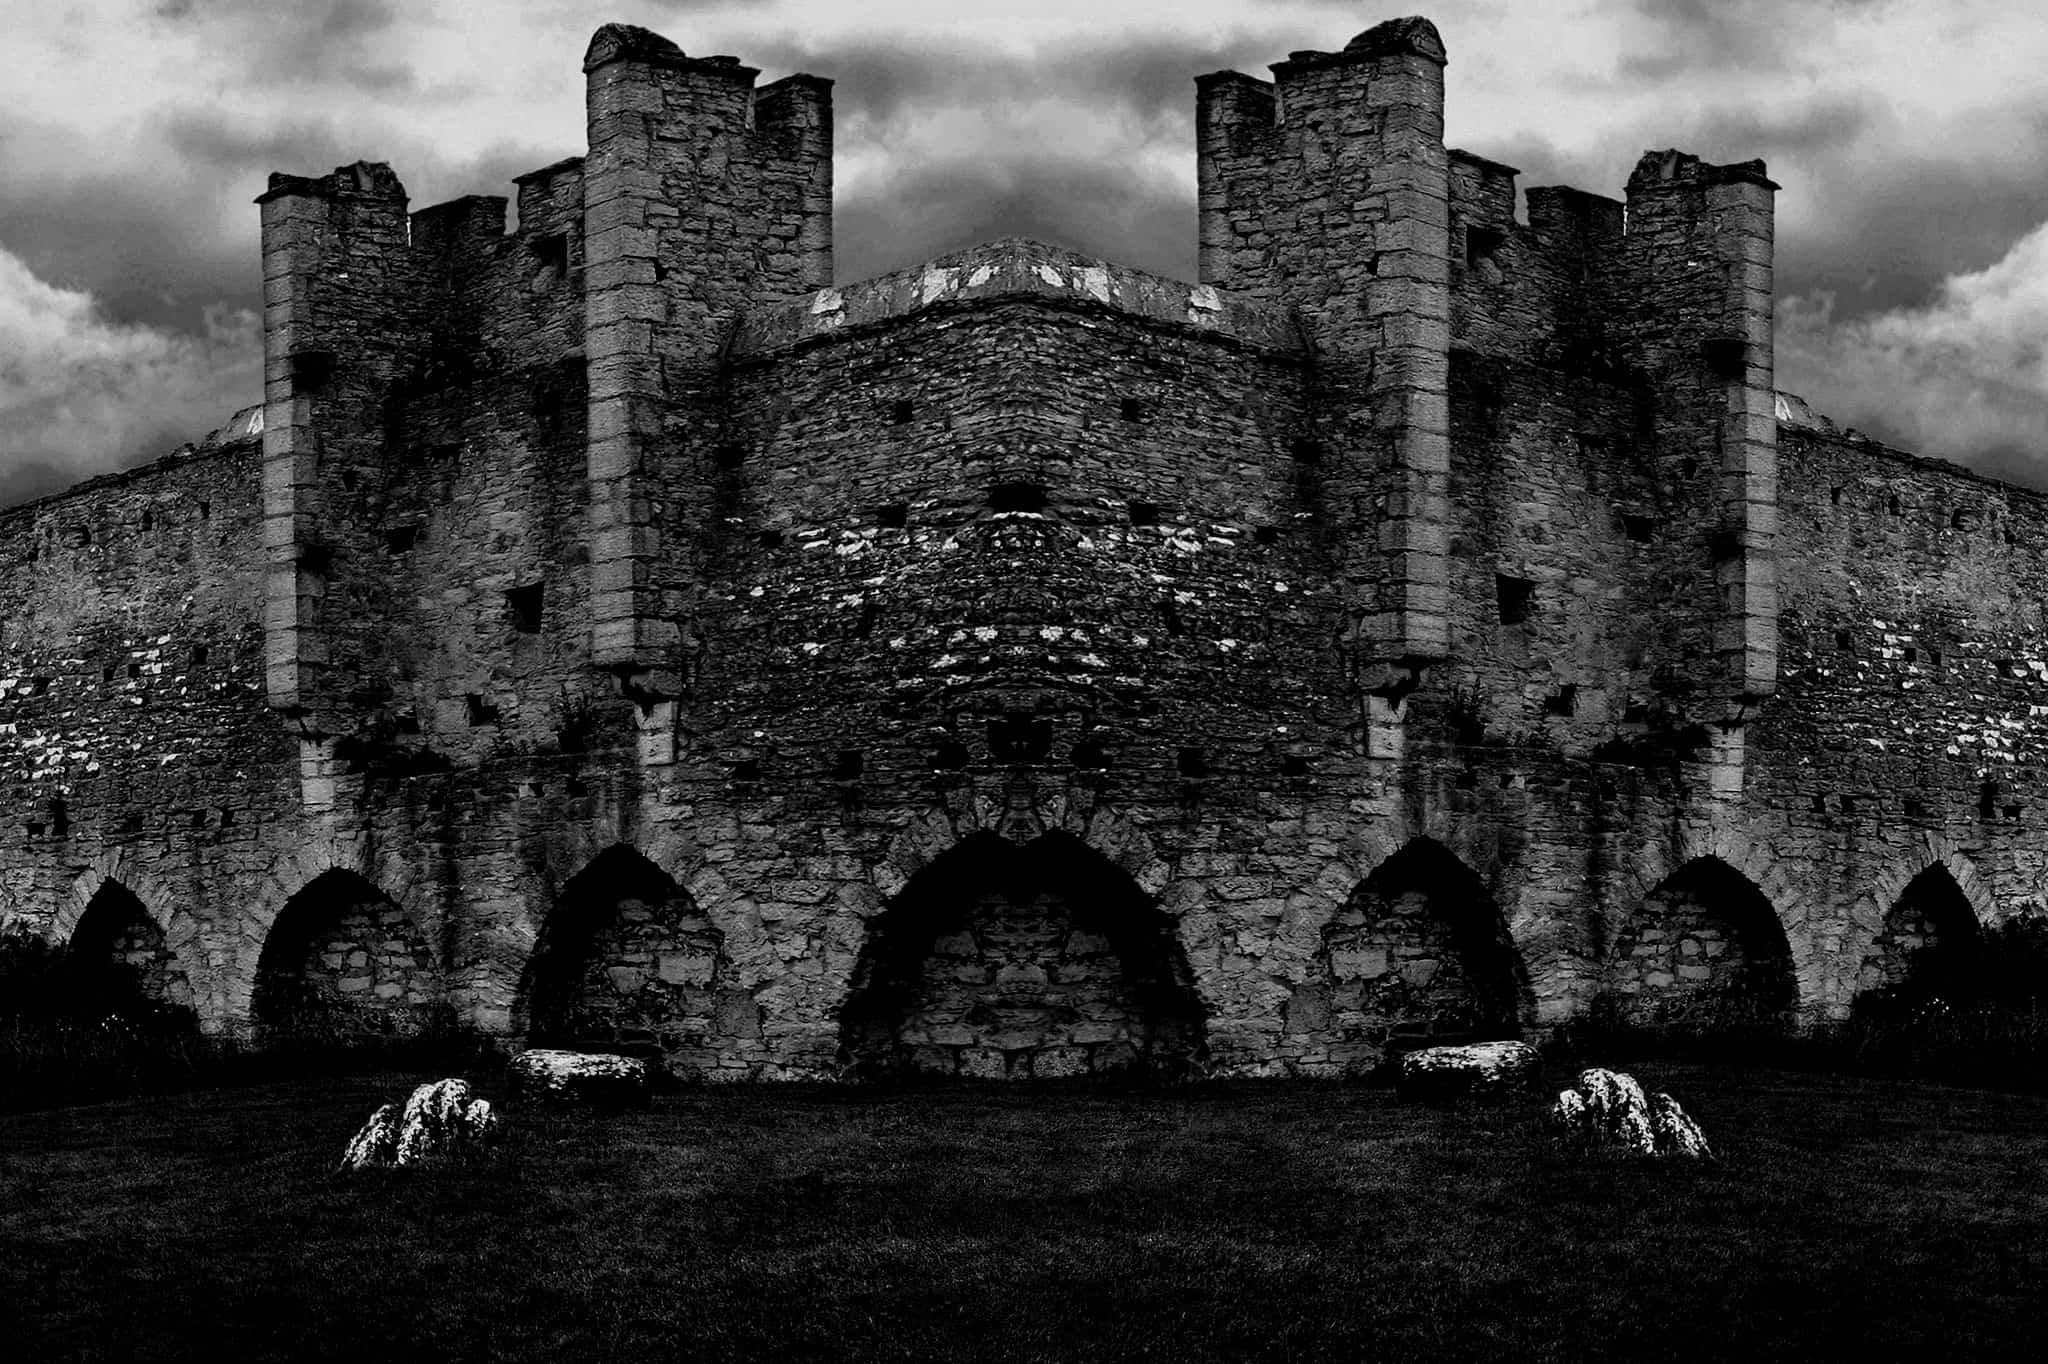 Exterior of a castle wall, black and white.